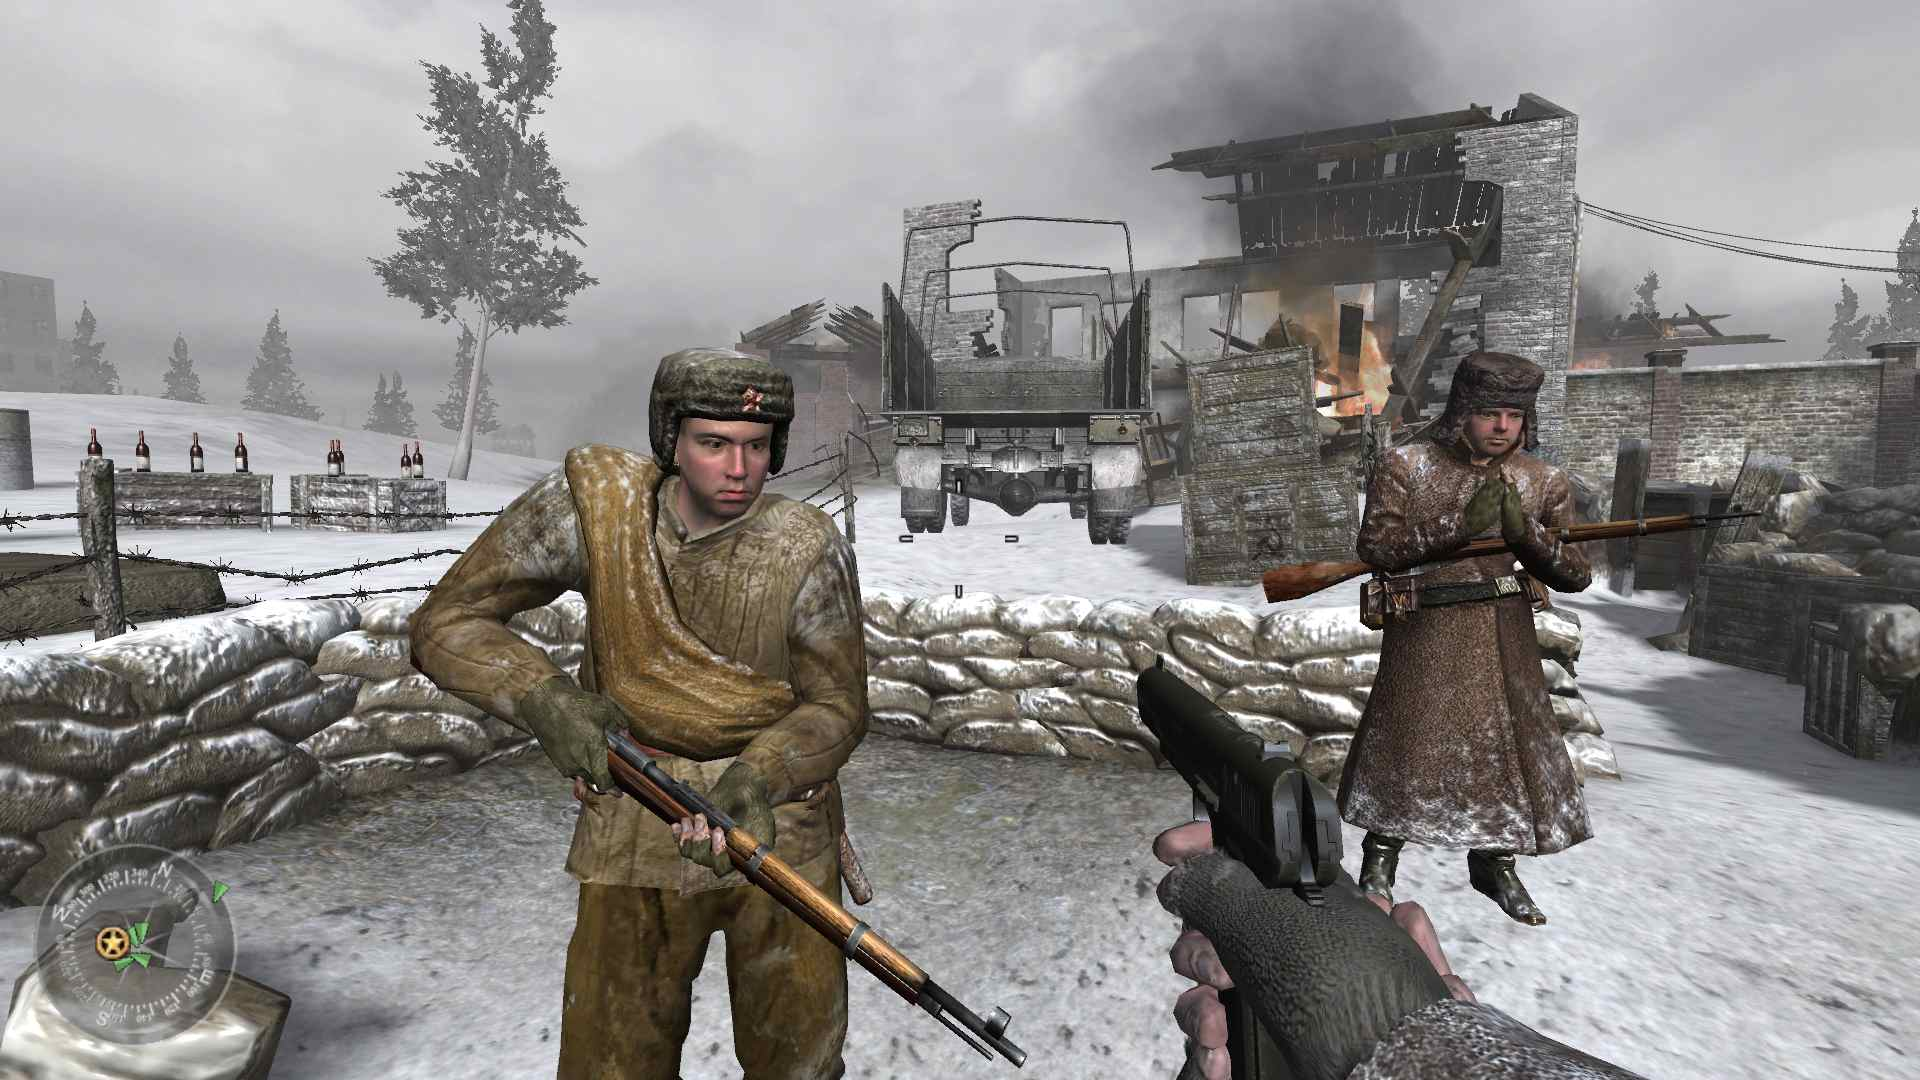 call of duty 2 highly compressed for pc only in 1.67 GB